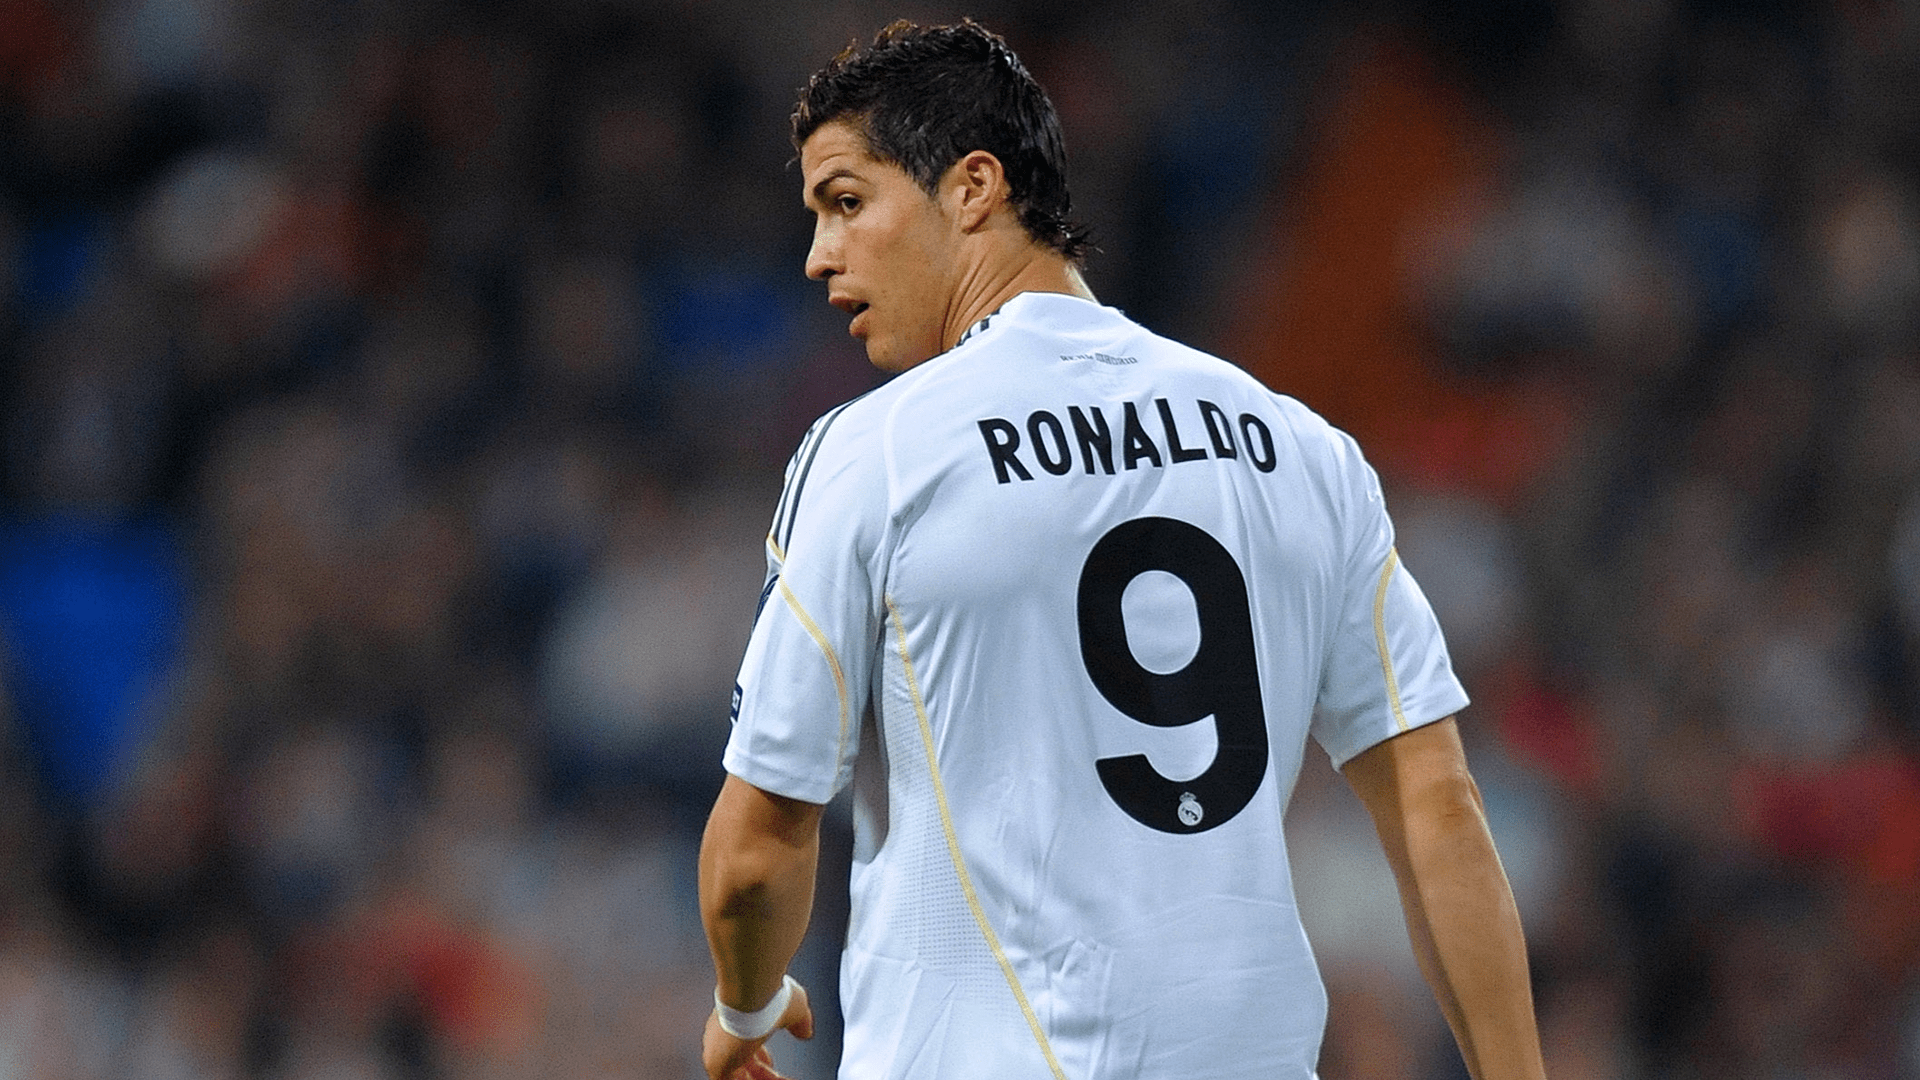 Las Vegas Police Dept 'issue a warrant to obtain Ronaldo's DNA' on rape claim by a US woman nine years ago